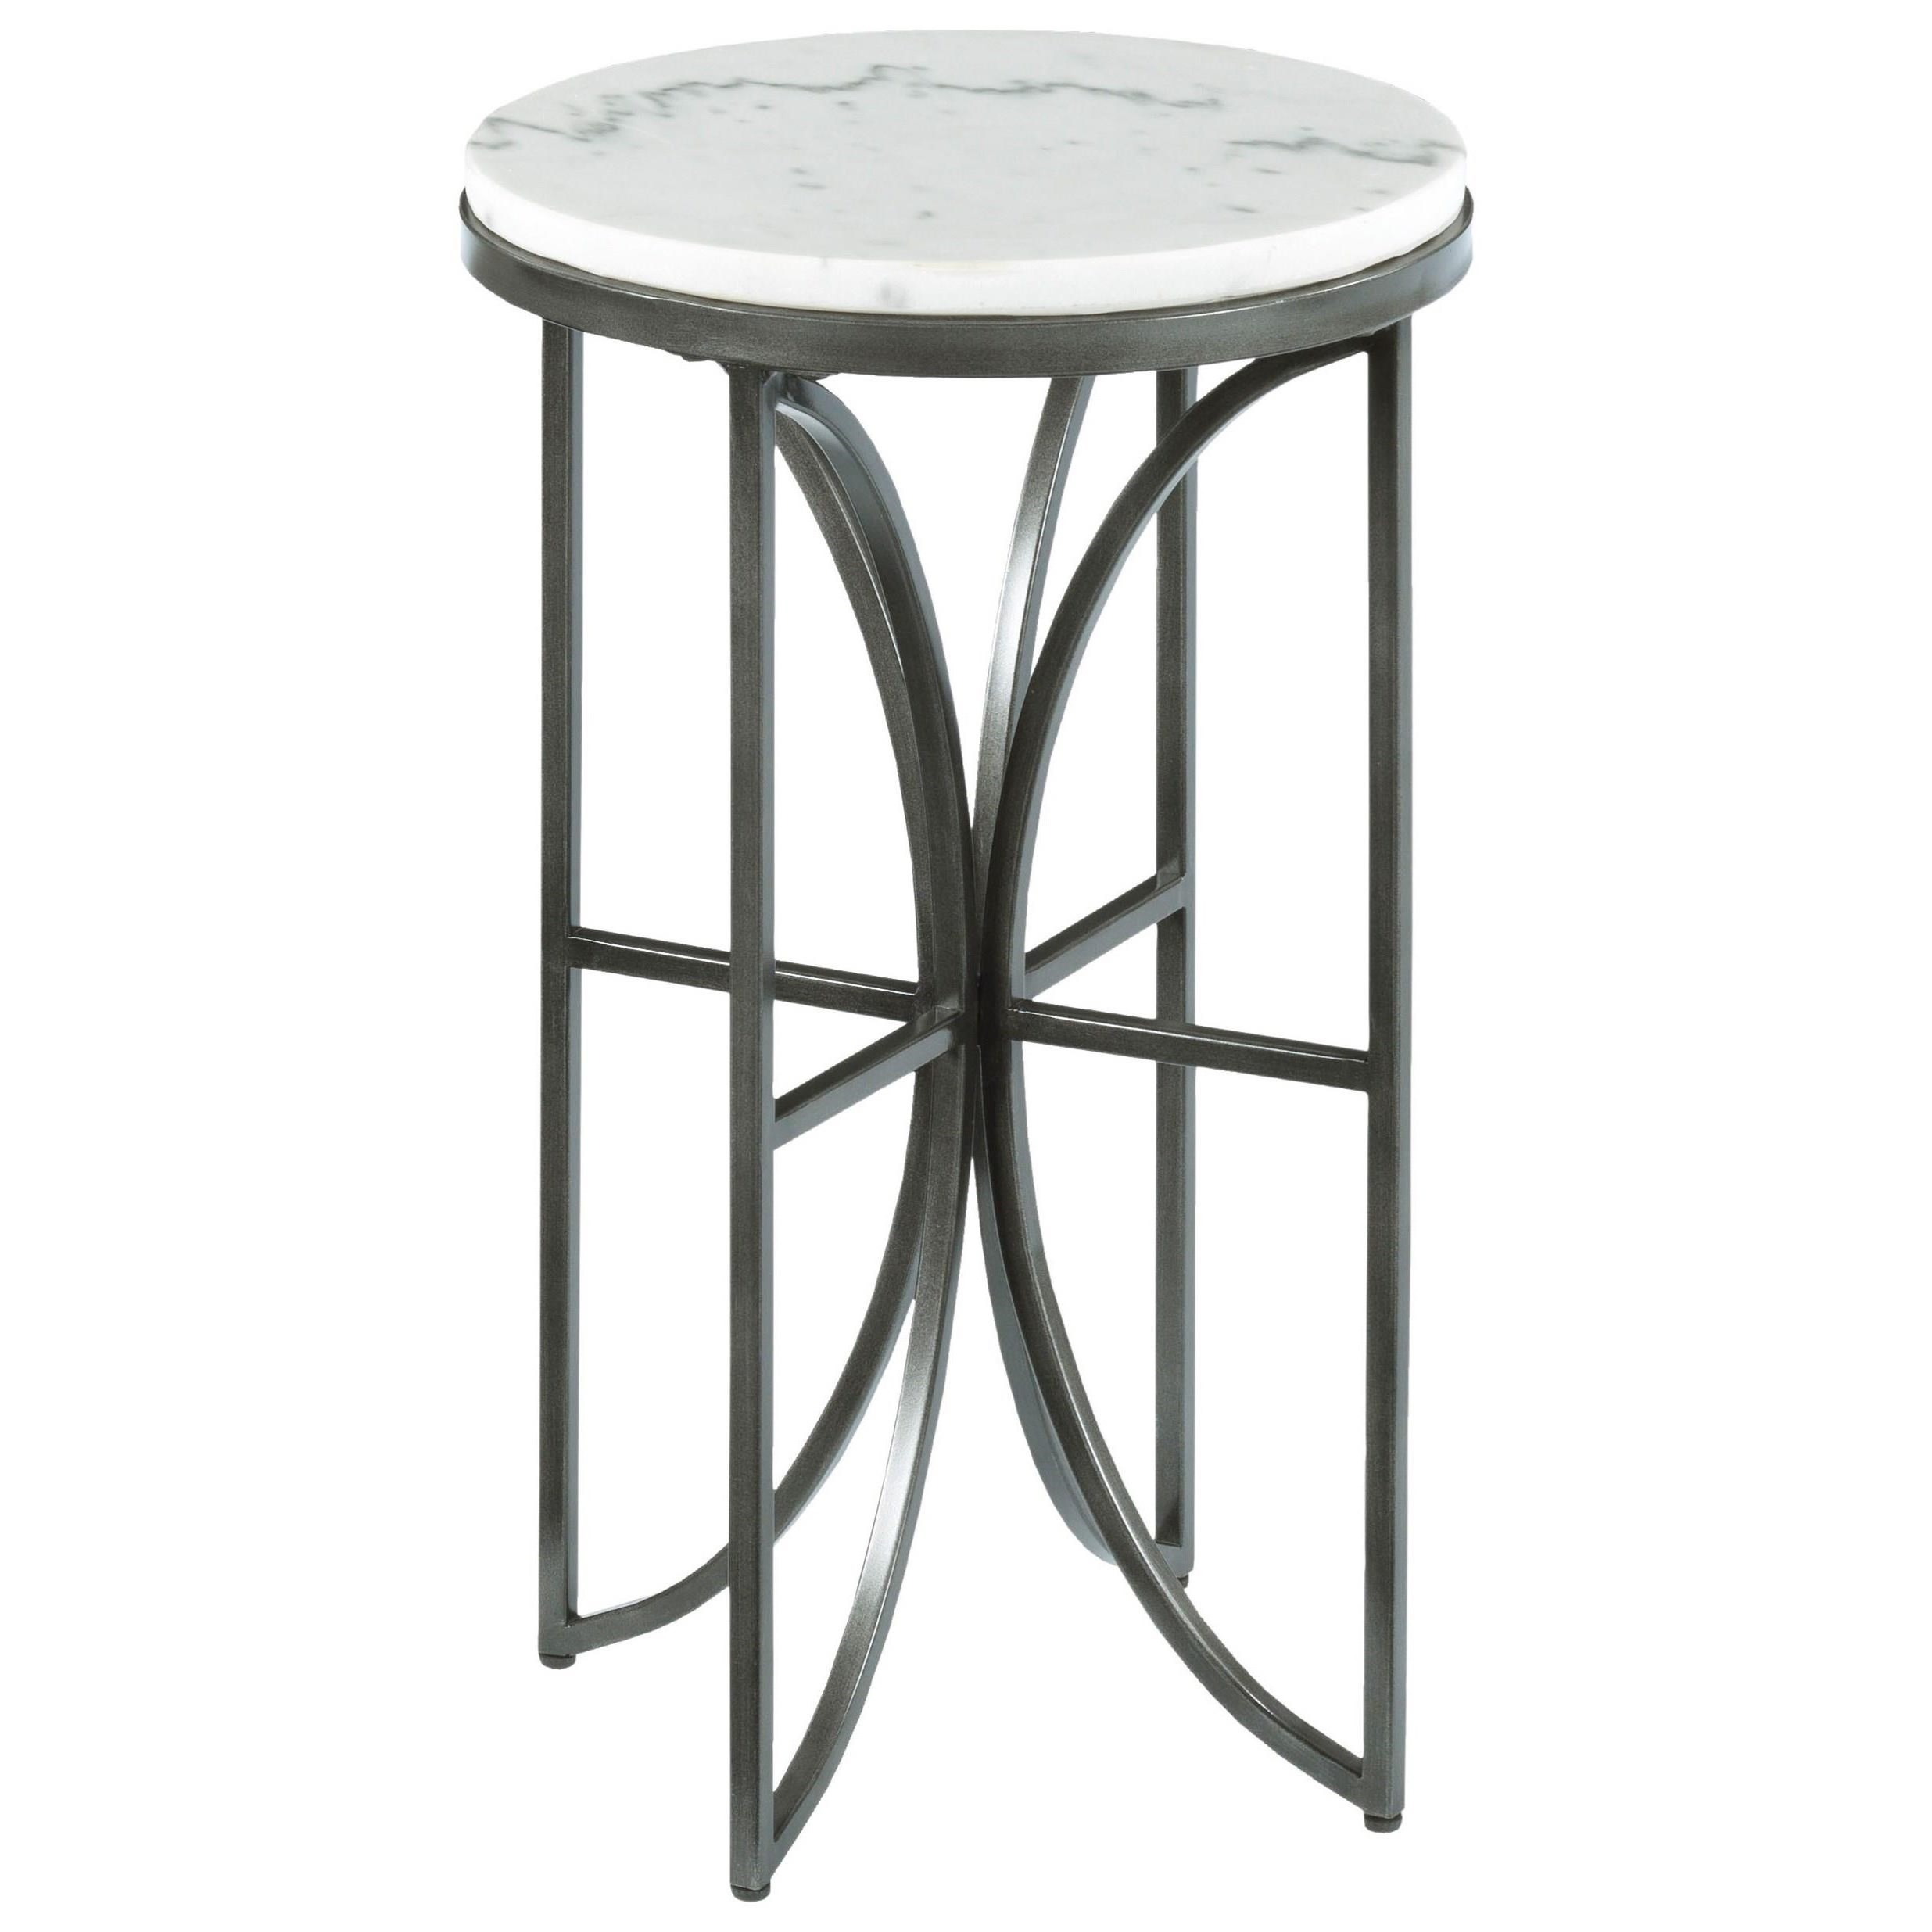 Small Round Glass End Table Hammary Impact Small Round Accent Table With Marble Top Howell